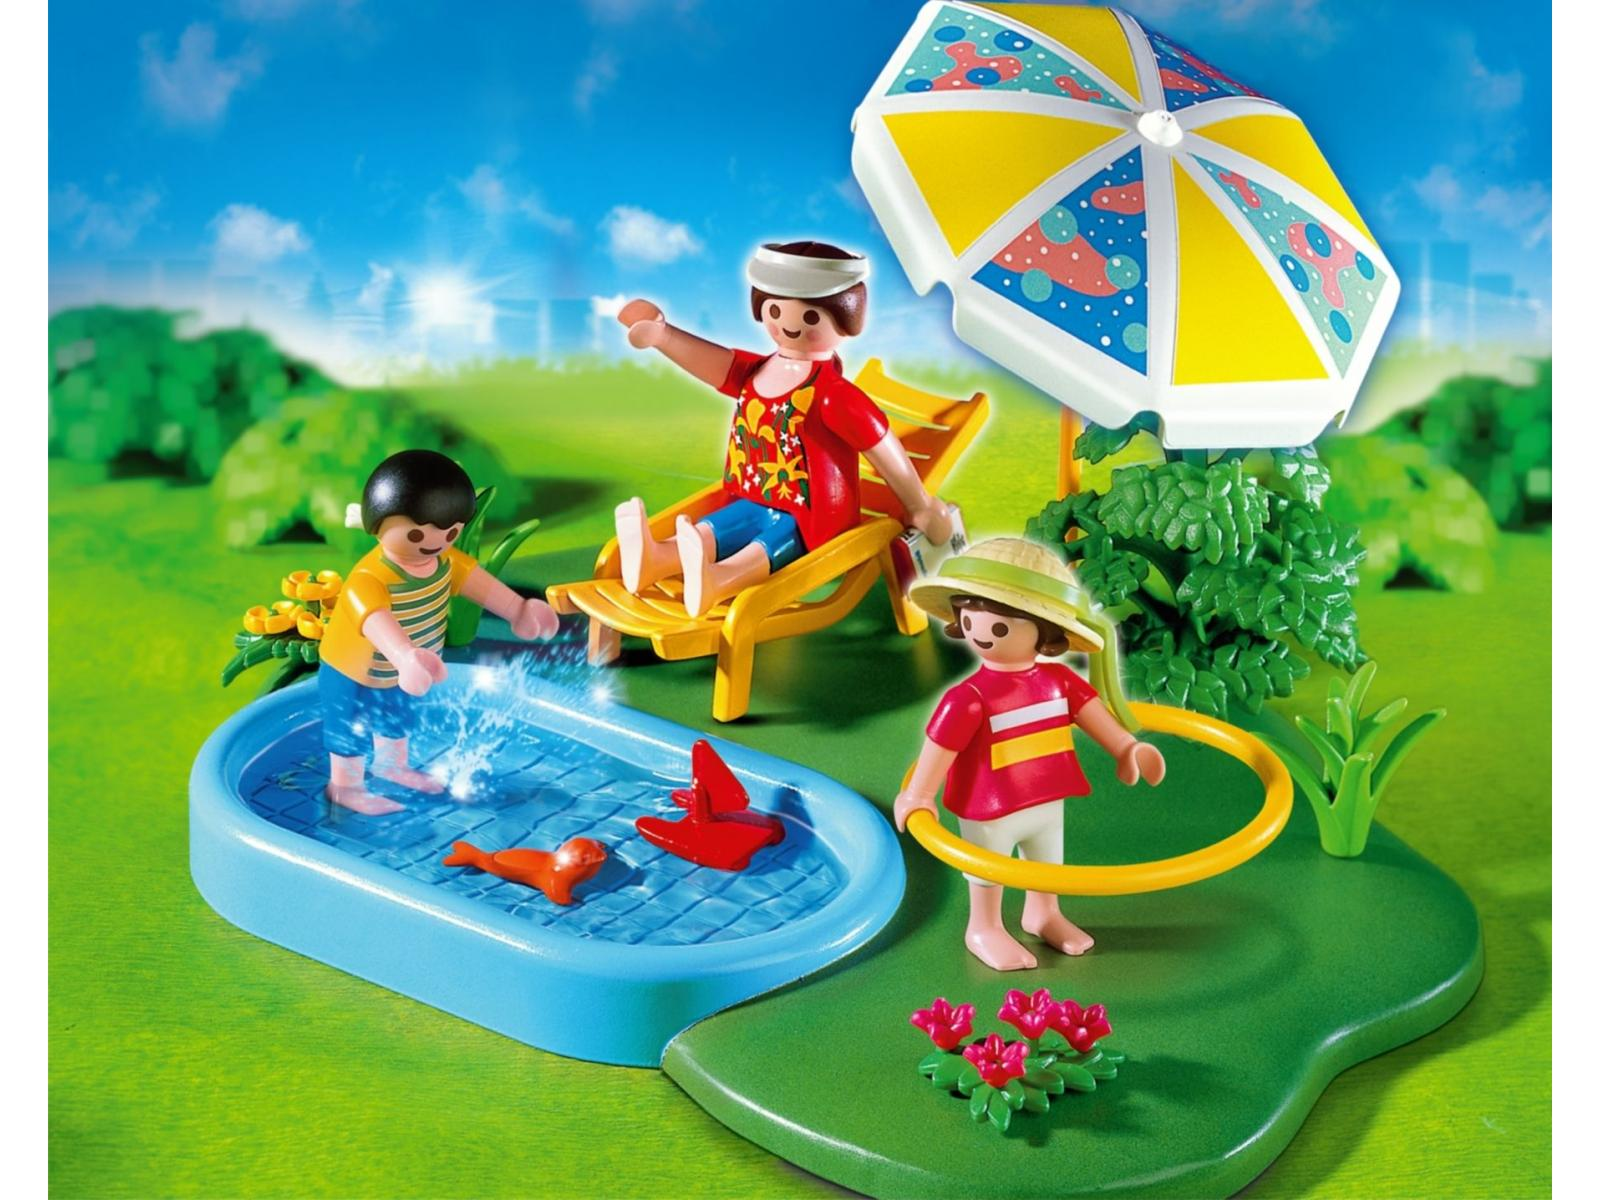 Piscine play mobile playmobil 3205 b famille piscine for Piscine playmobil 3205